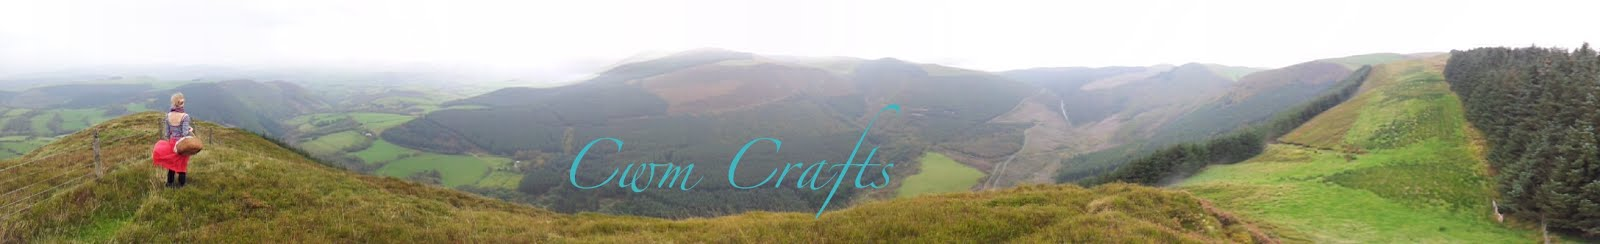 Cwm Crafts